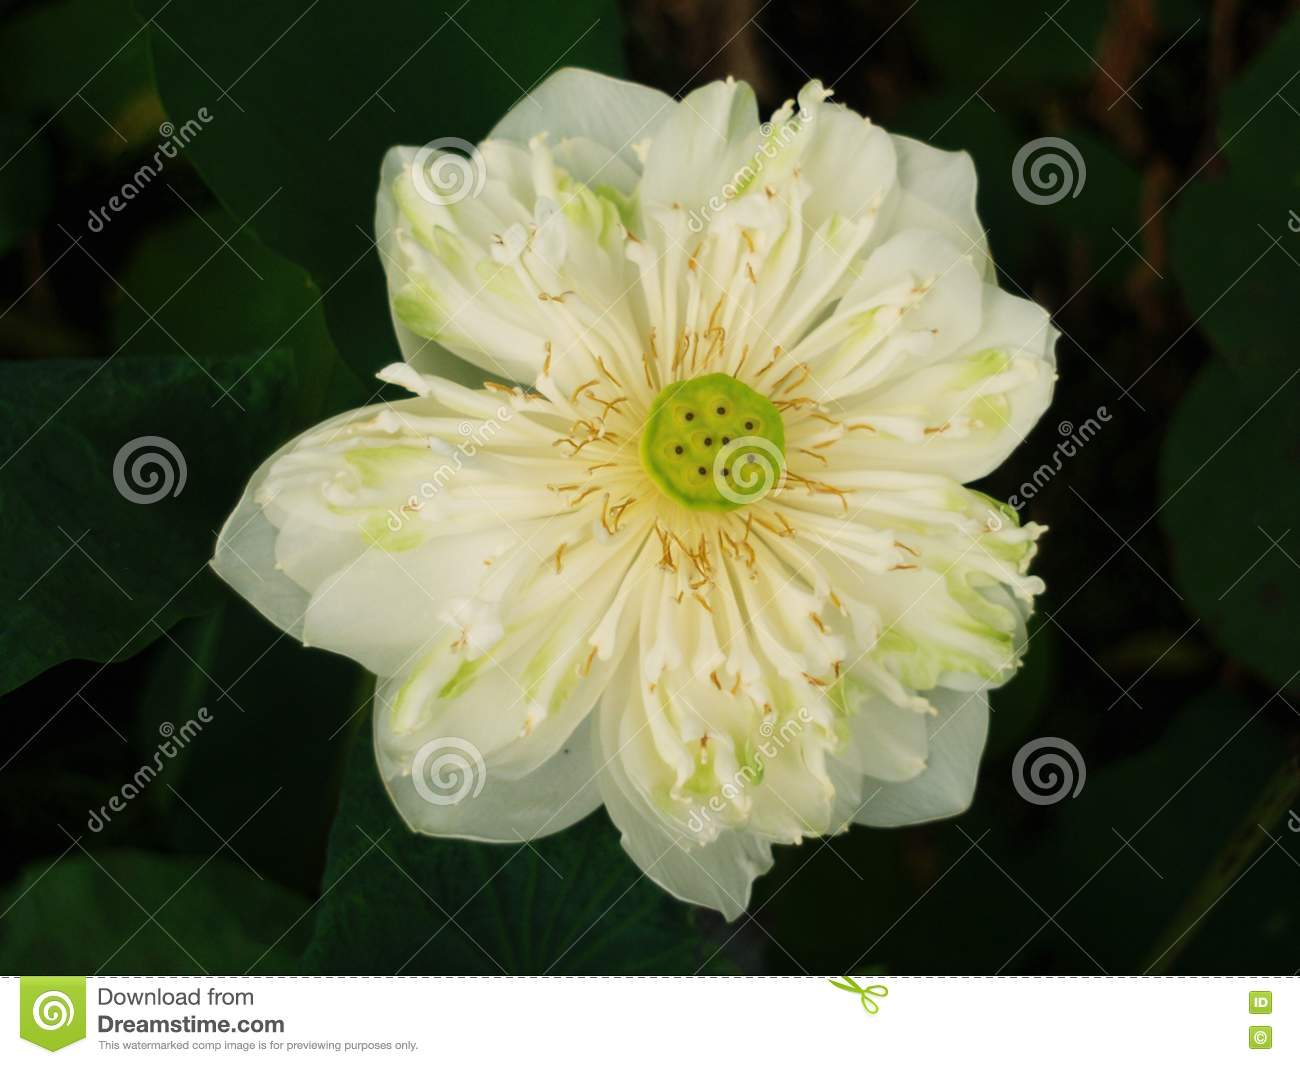 Lotus Or Water Lily The Beautiful Water Flowers Stock Image Image